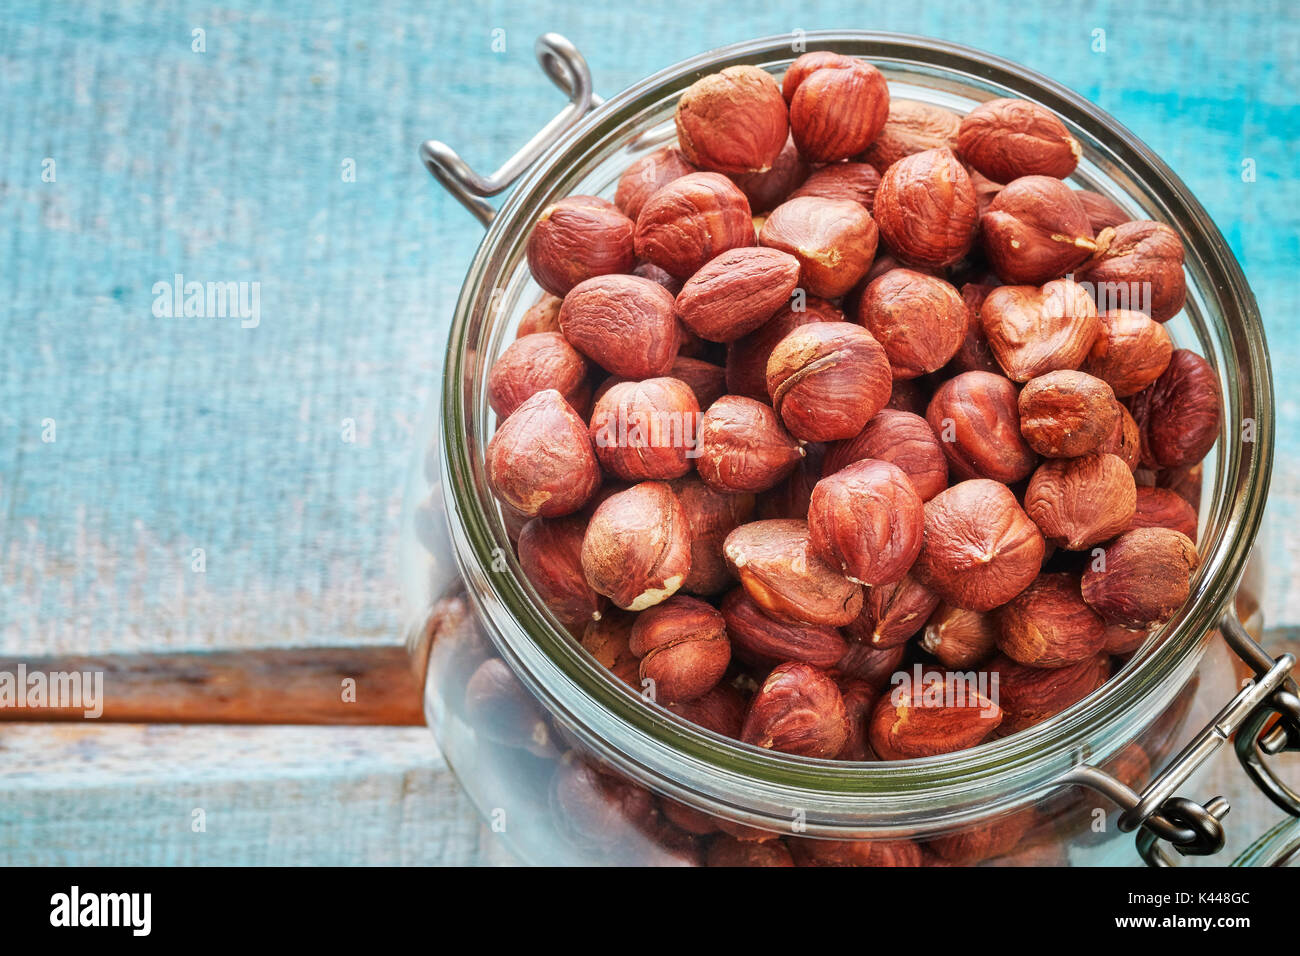 Hazelnuts in a jar on a rustic wooden background, space for text, shallow depth of field. - Stock Image